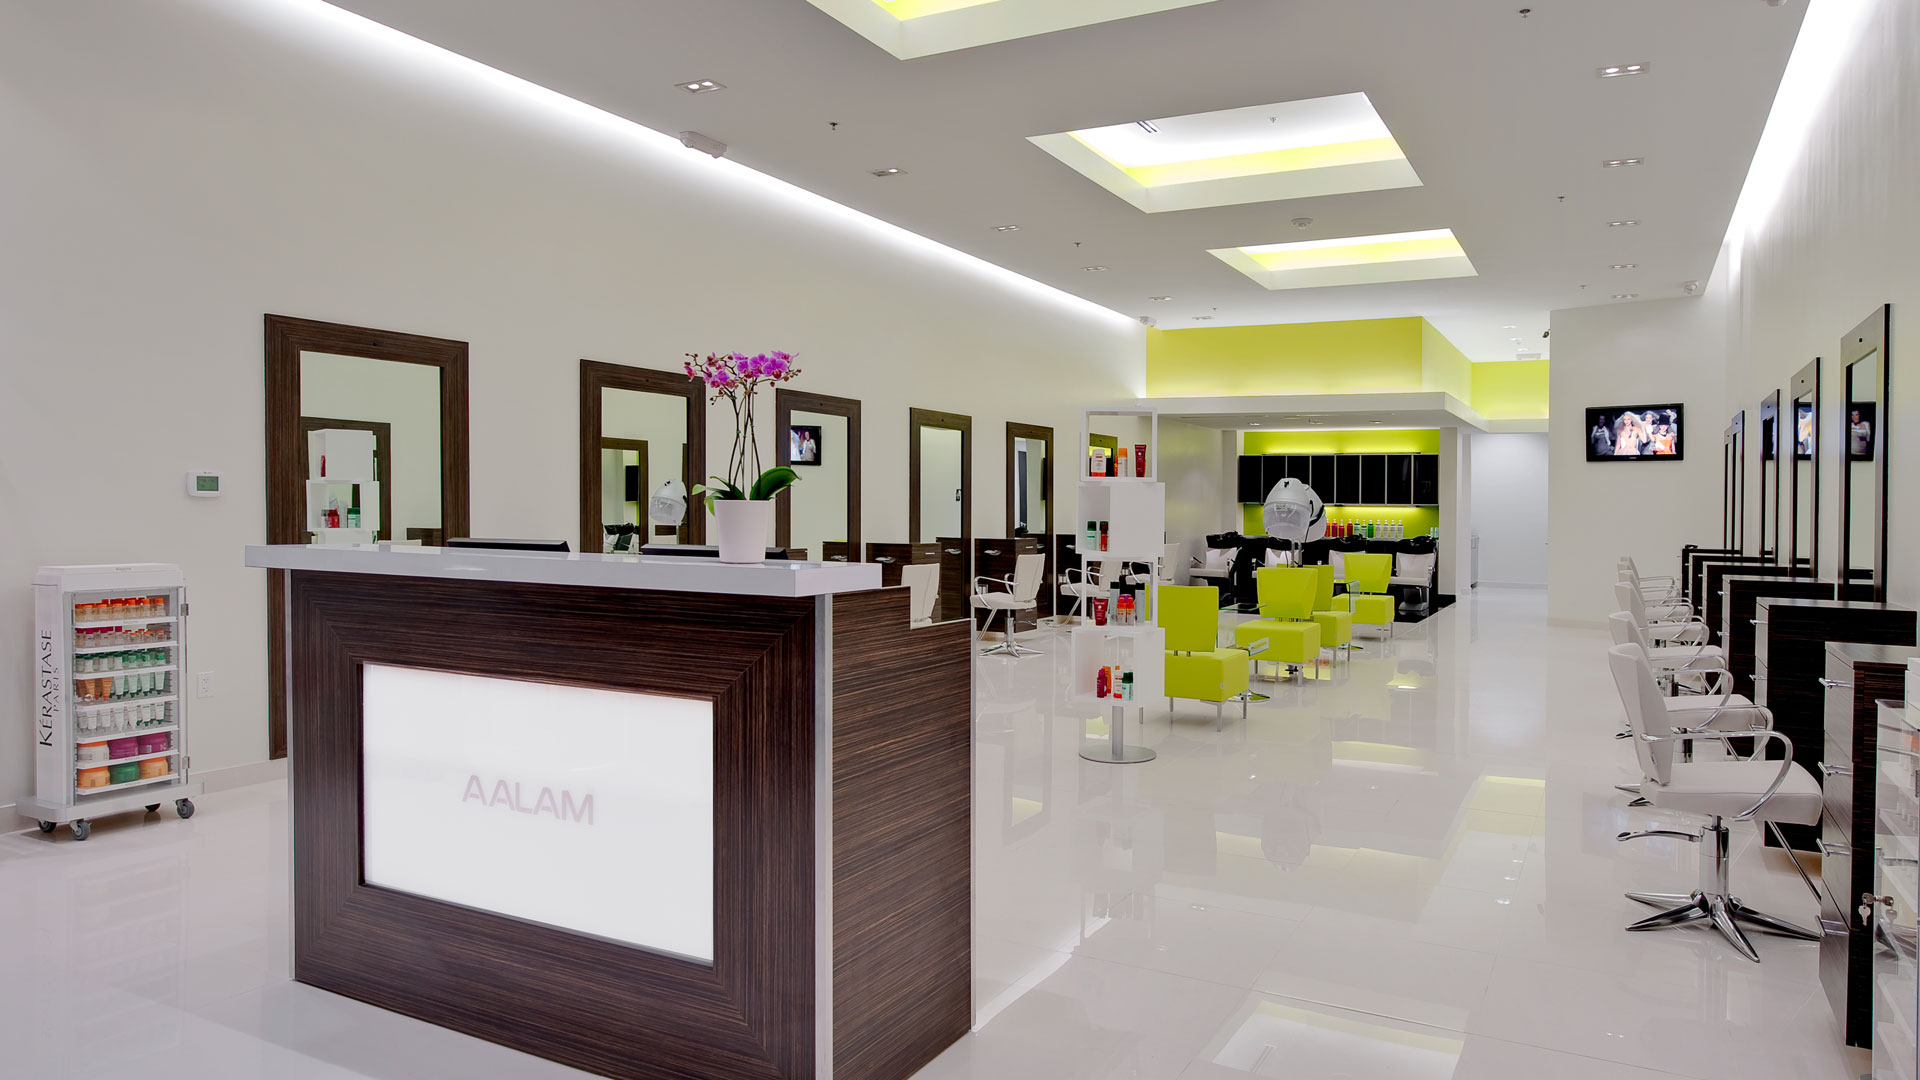 Aalam voted best hair salon plano frisco north dallas for for Aalam salon prices